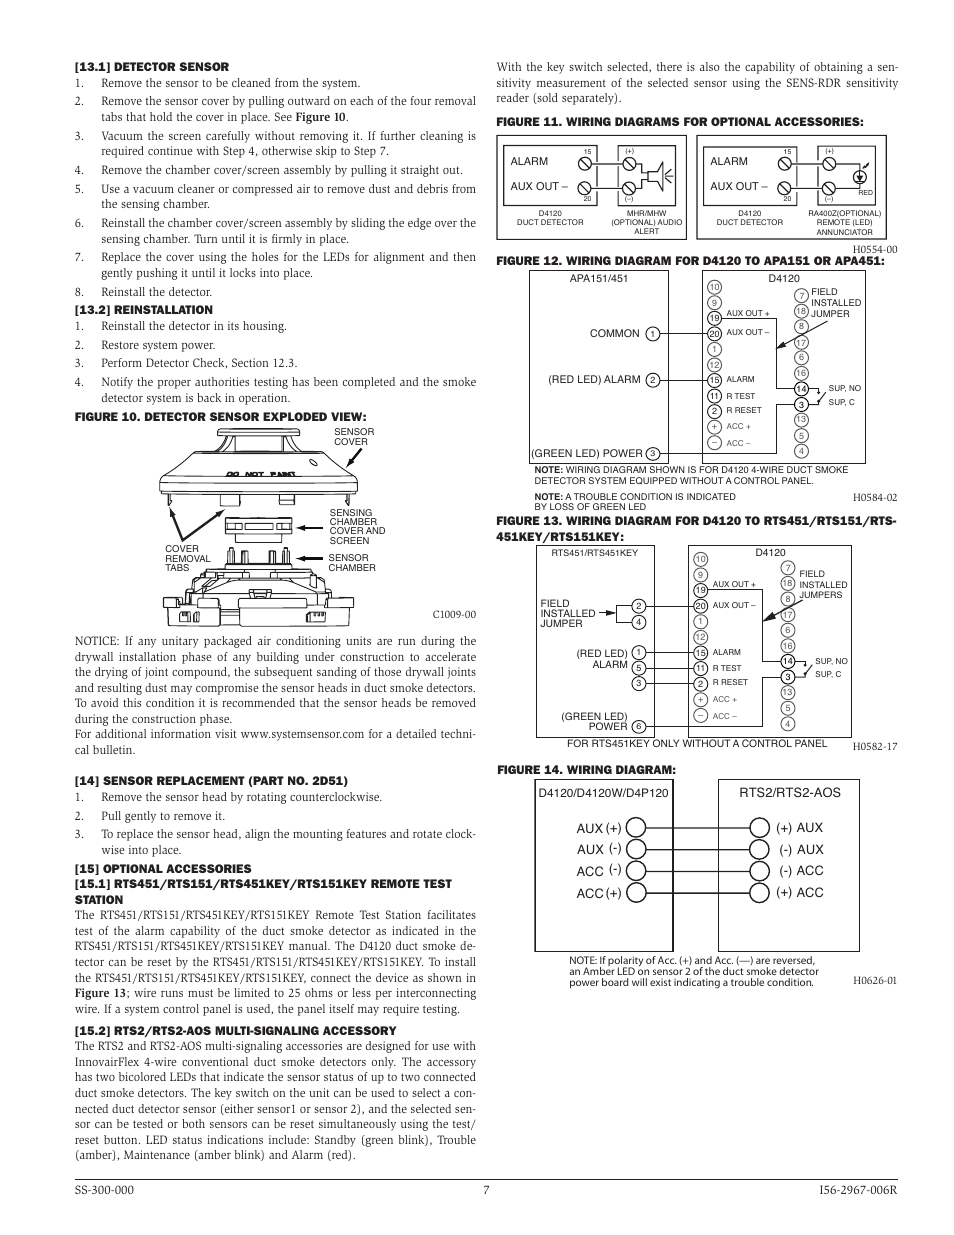 system sensor d4120 d4p120 and d4s page7 system sensor d4120, d4p120, and d4s user manual page 7 8 system sensor dh1851ac wiring diagrams at panicattacktreatment.co